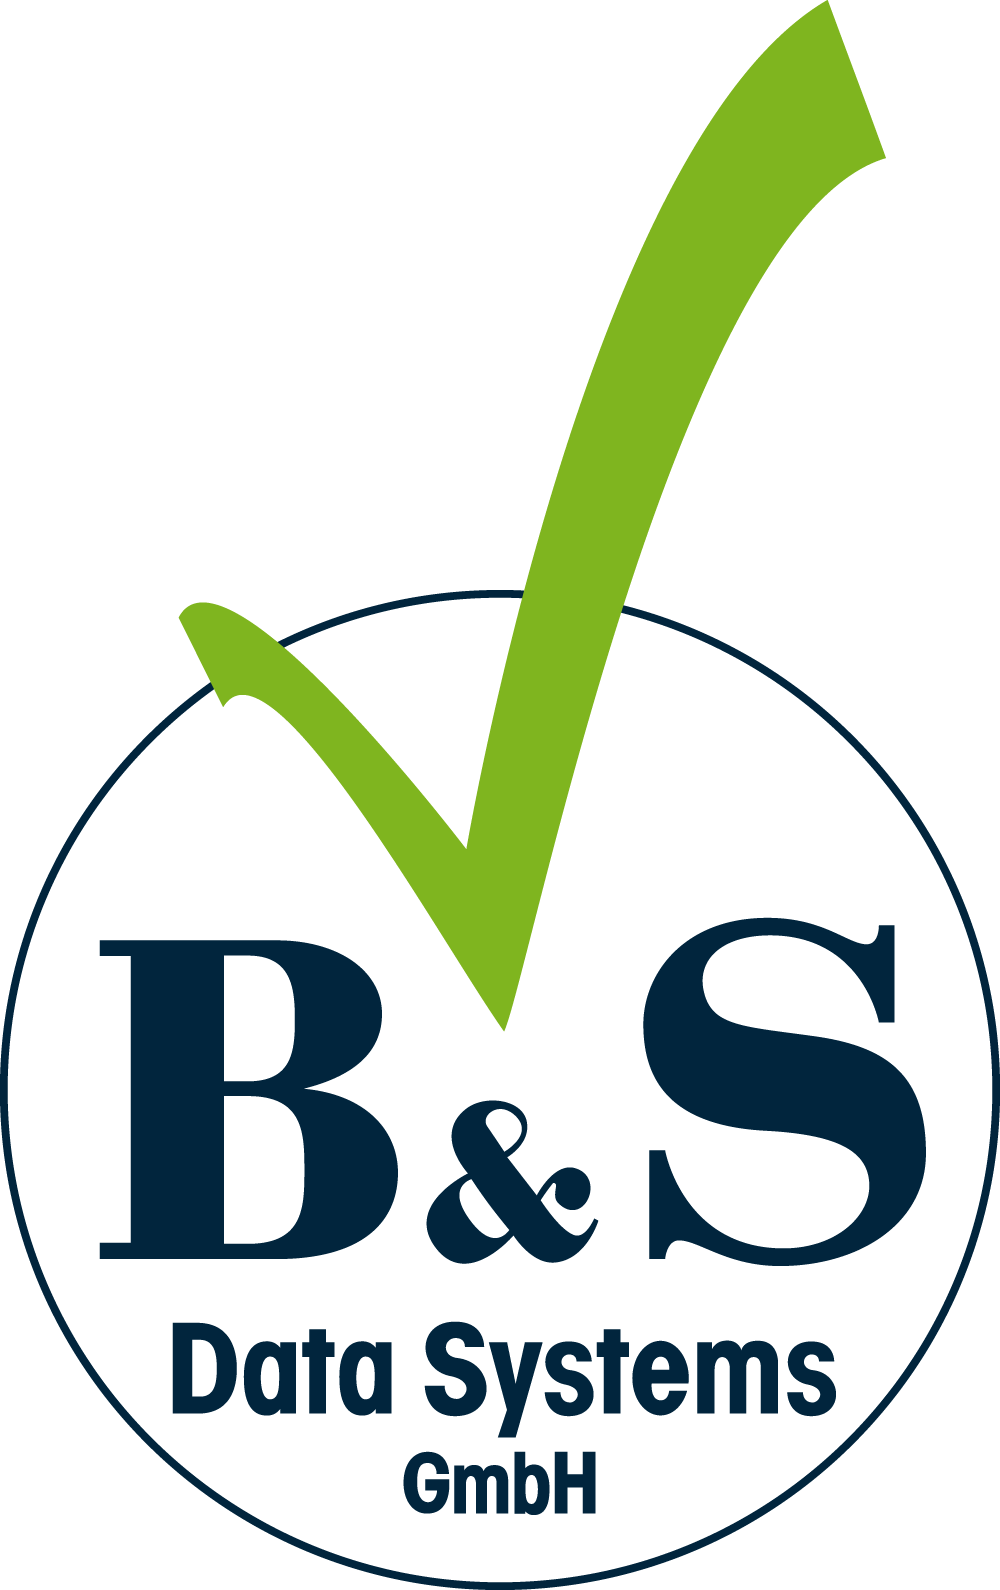 B & S Data Systems Logo